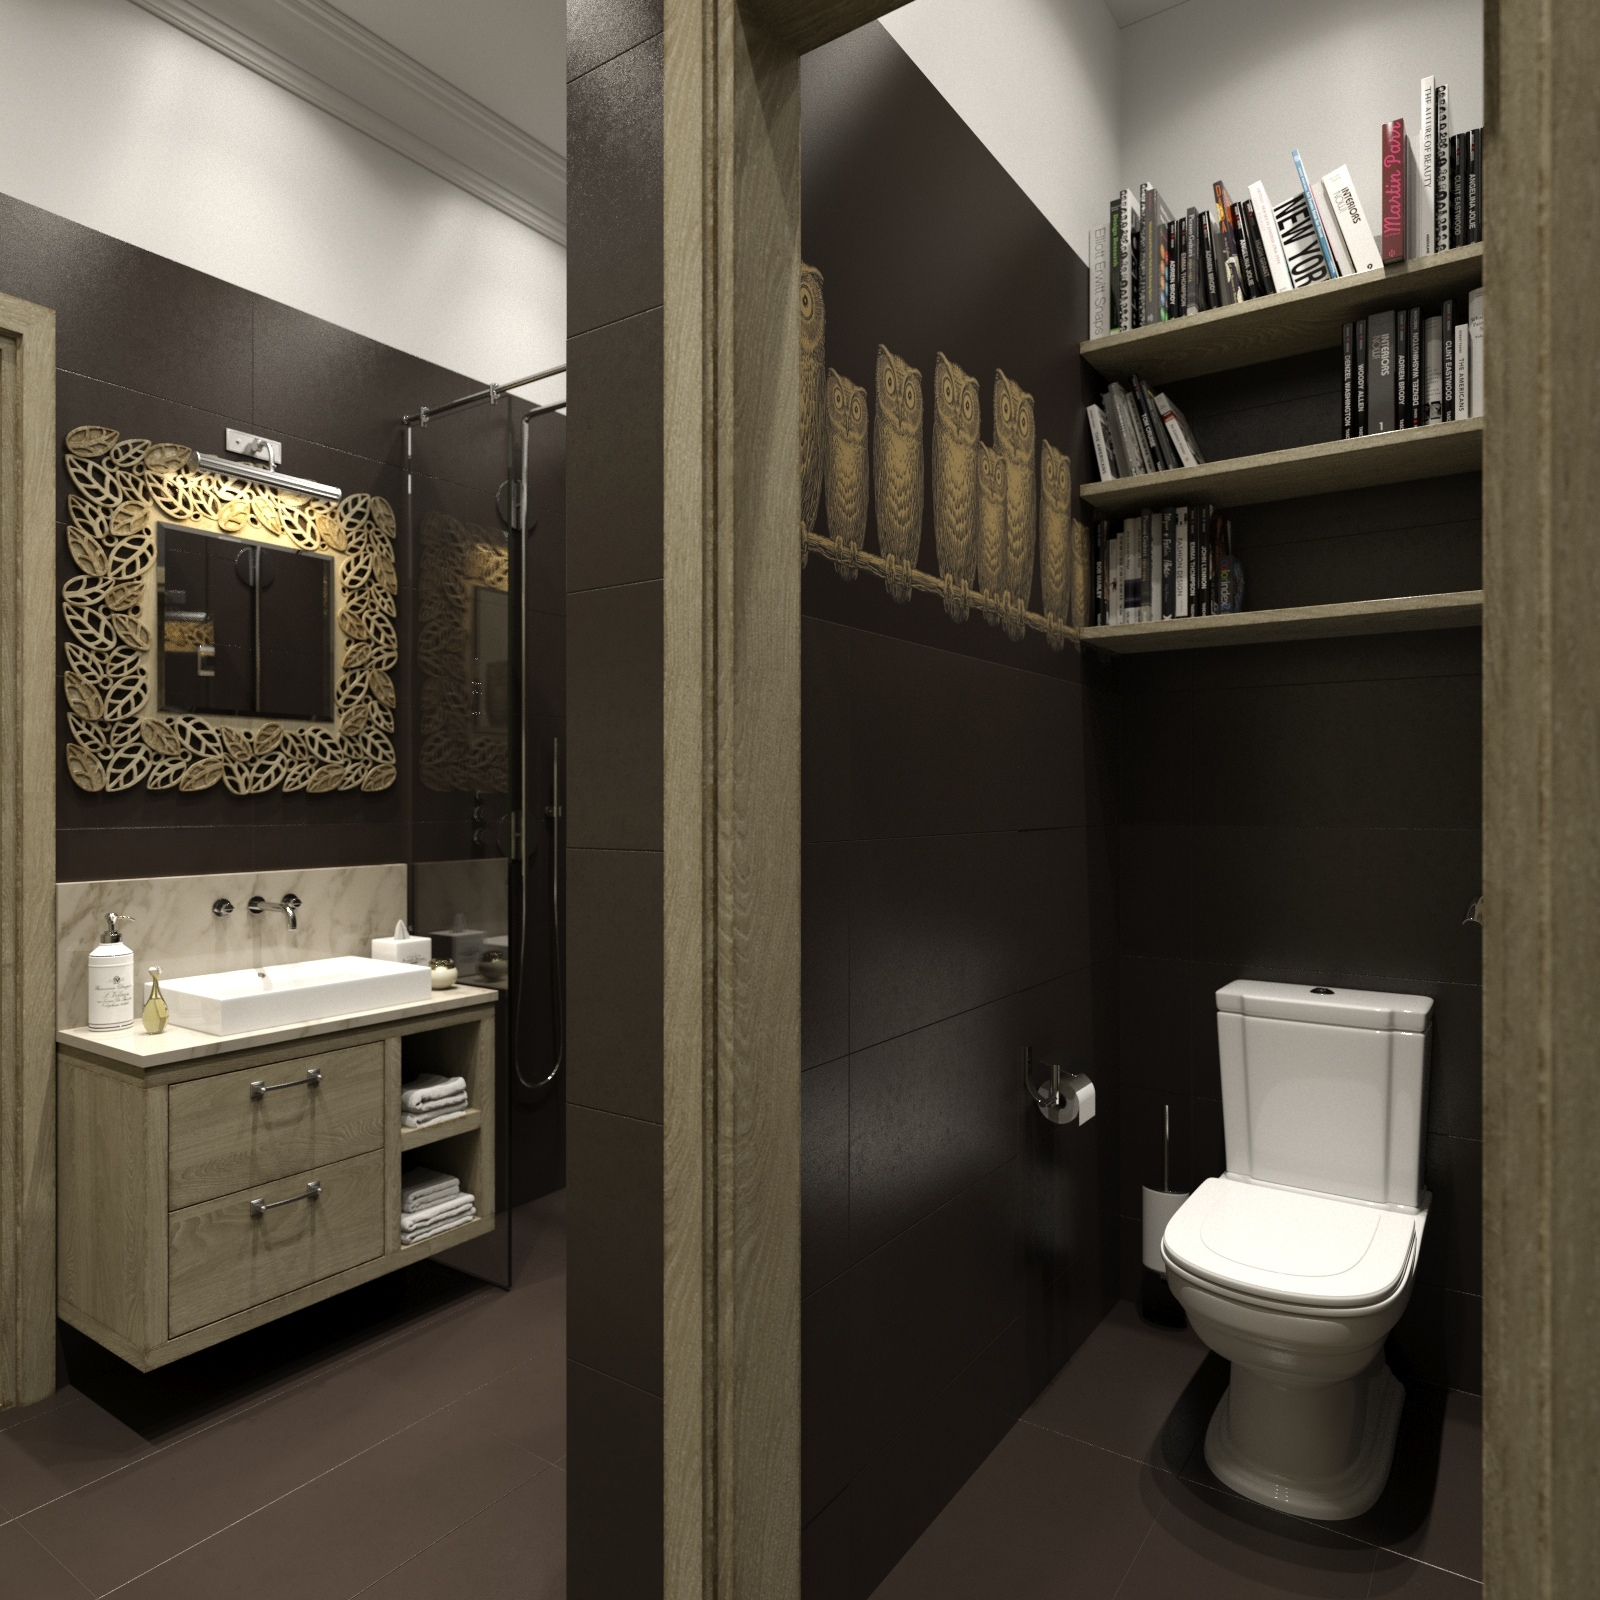 Homey feeling room designs - Decoration toilettes design ...